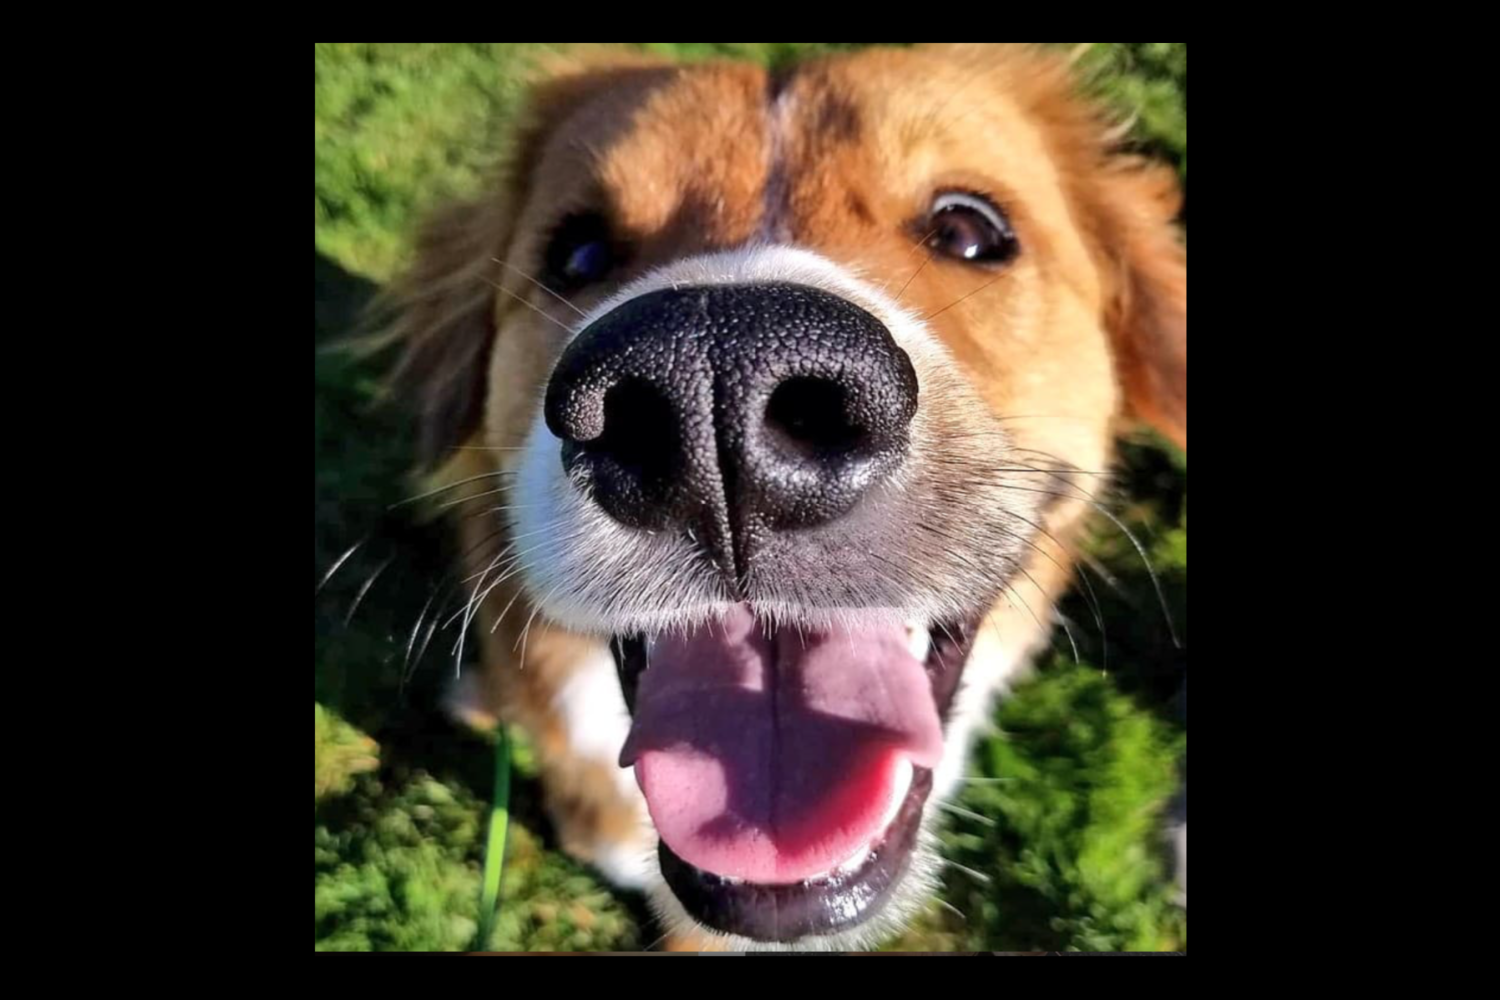 Darrel the Doge has a beautiful smile{ }(Image: Hailey Adair)